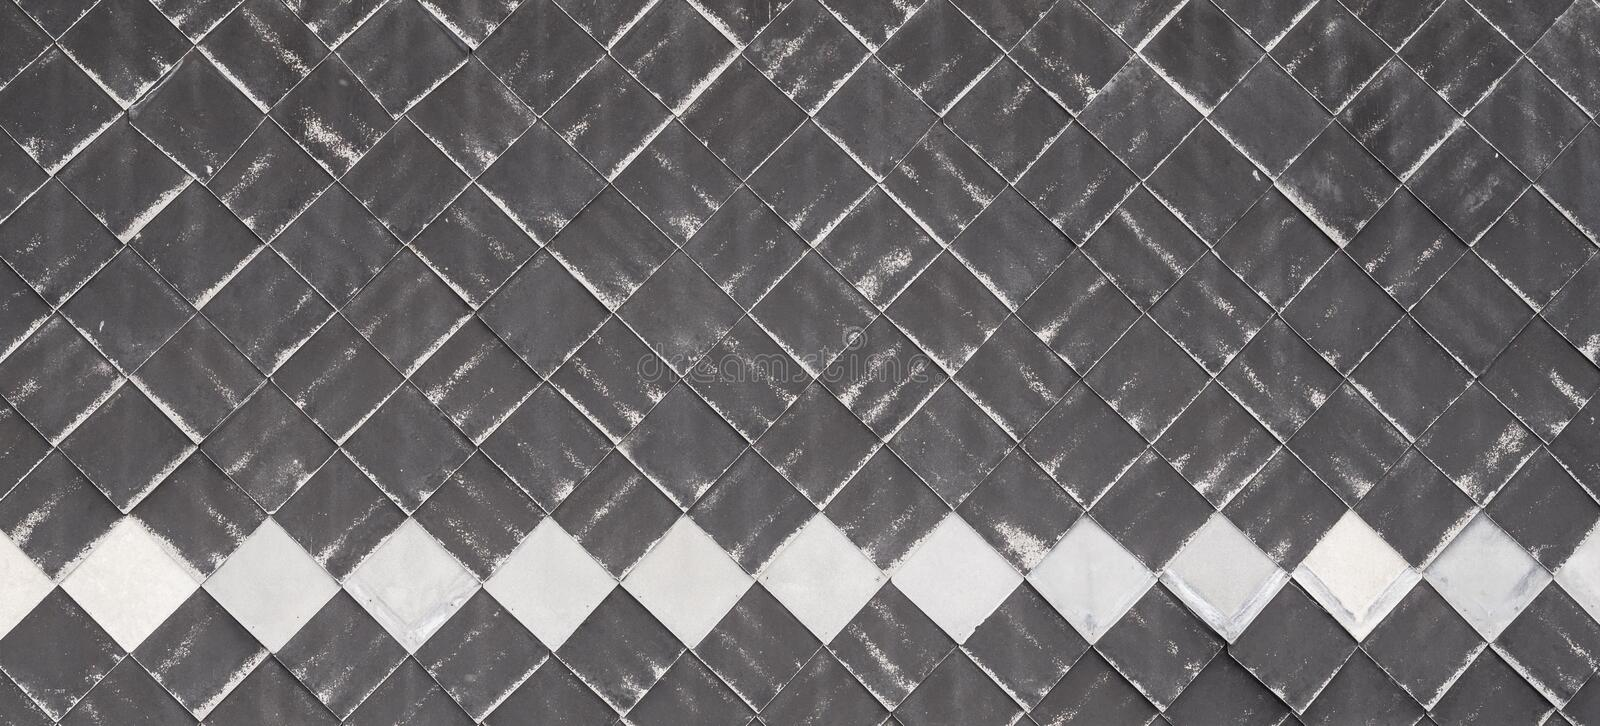 Tiling of wall with plastic material. Old weathered. texture background royalty free stock photo